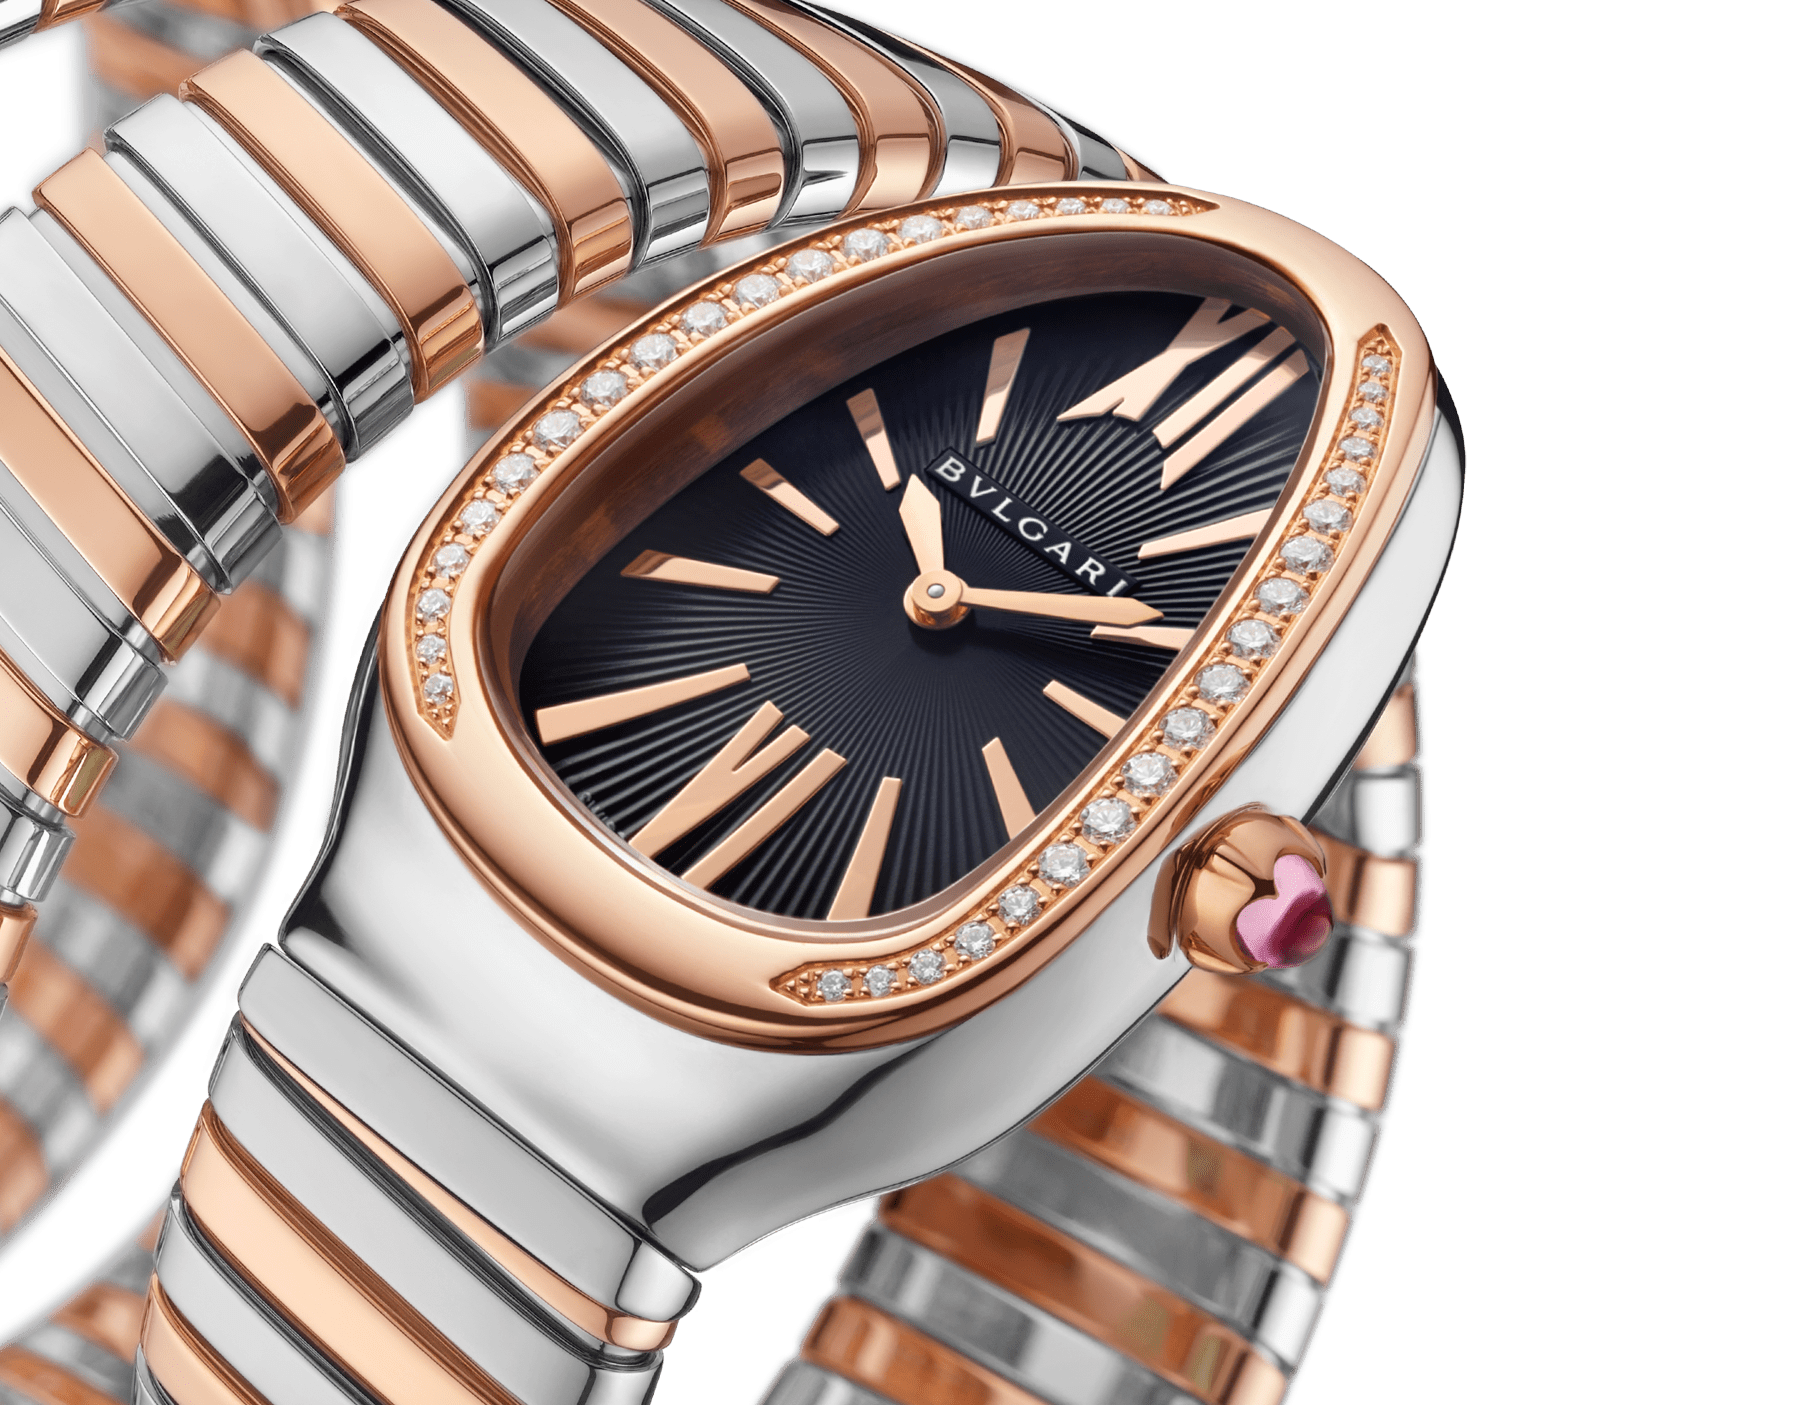 Serpenti Tubogas five-spiral watch with stainless steel case, 18 kt rose gold bezel set with brilliant cut diamonds, black lacquered dial, 18 kt rose gold and stainless steel bracelet. 102621 image 2